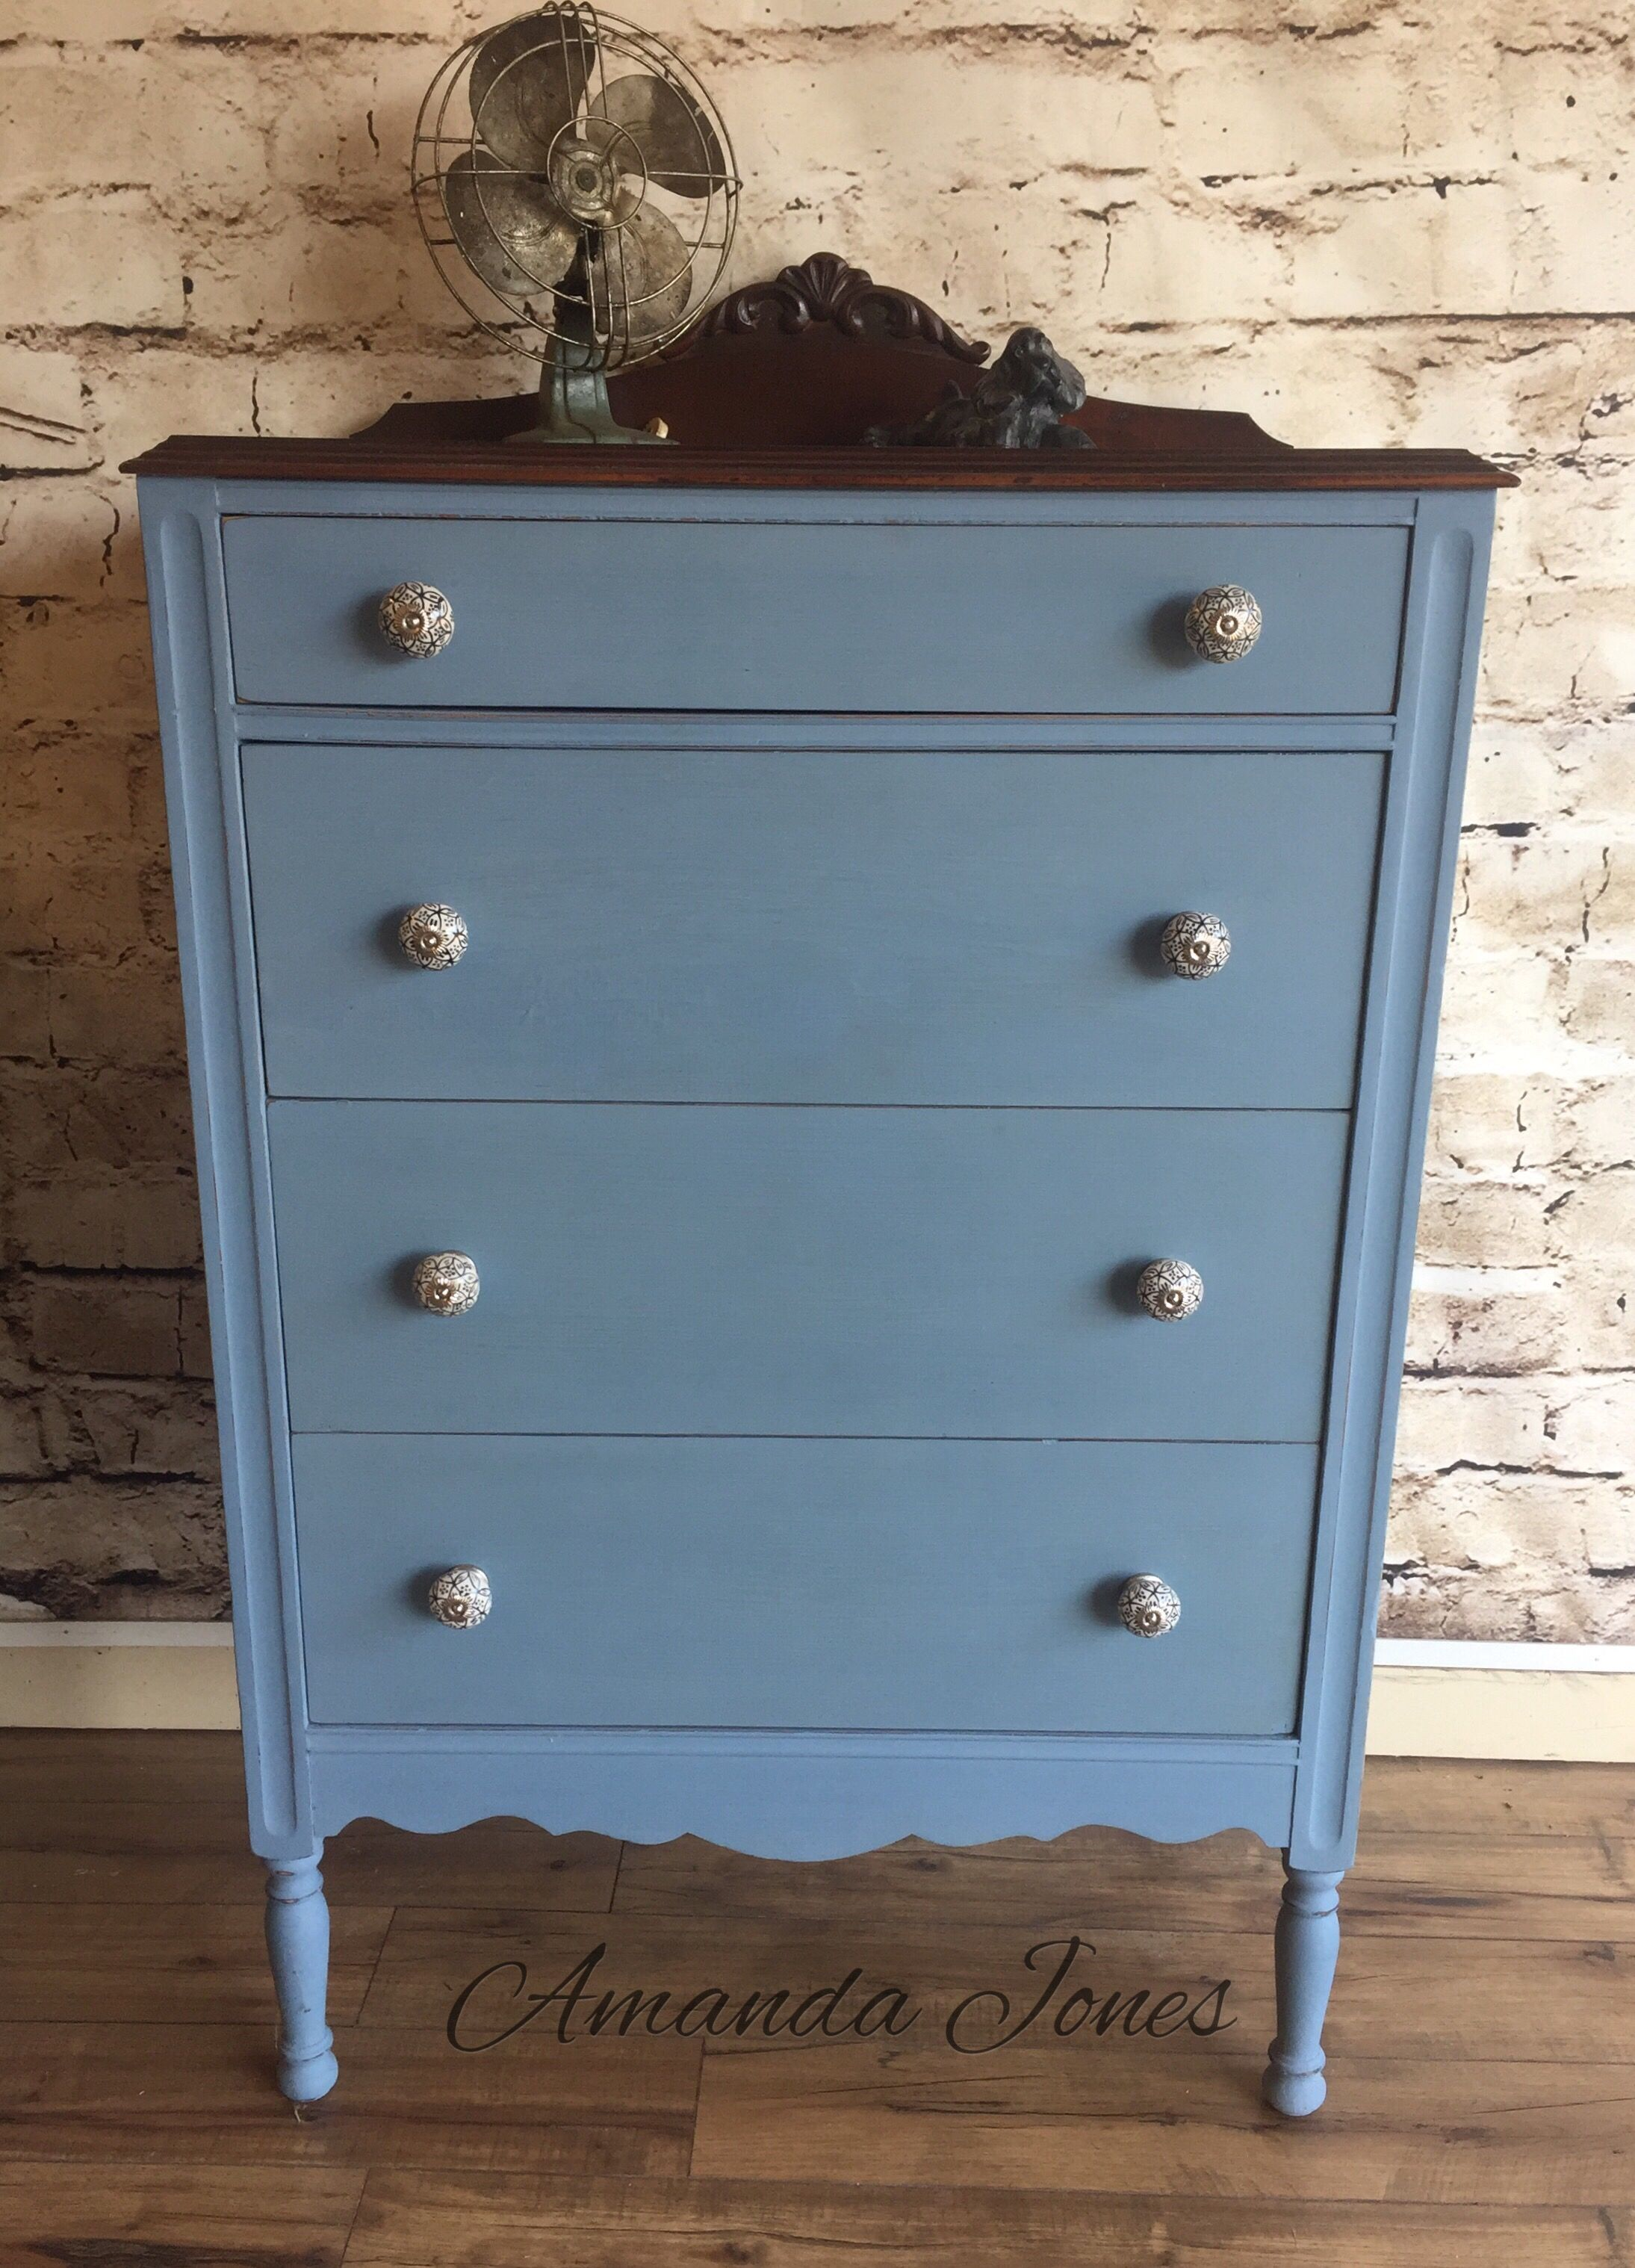 Custom Mix Of Paris Grey And Napoleonic Blue Chalk Paint